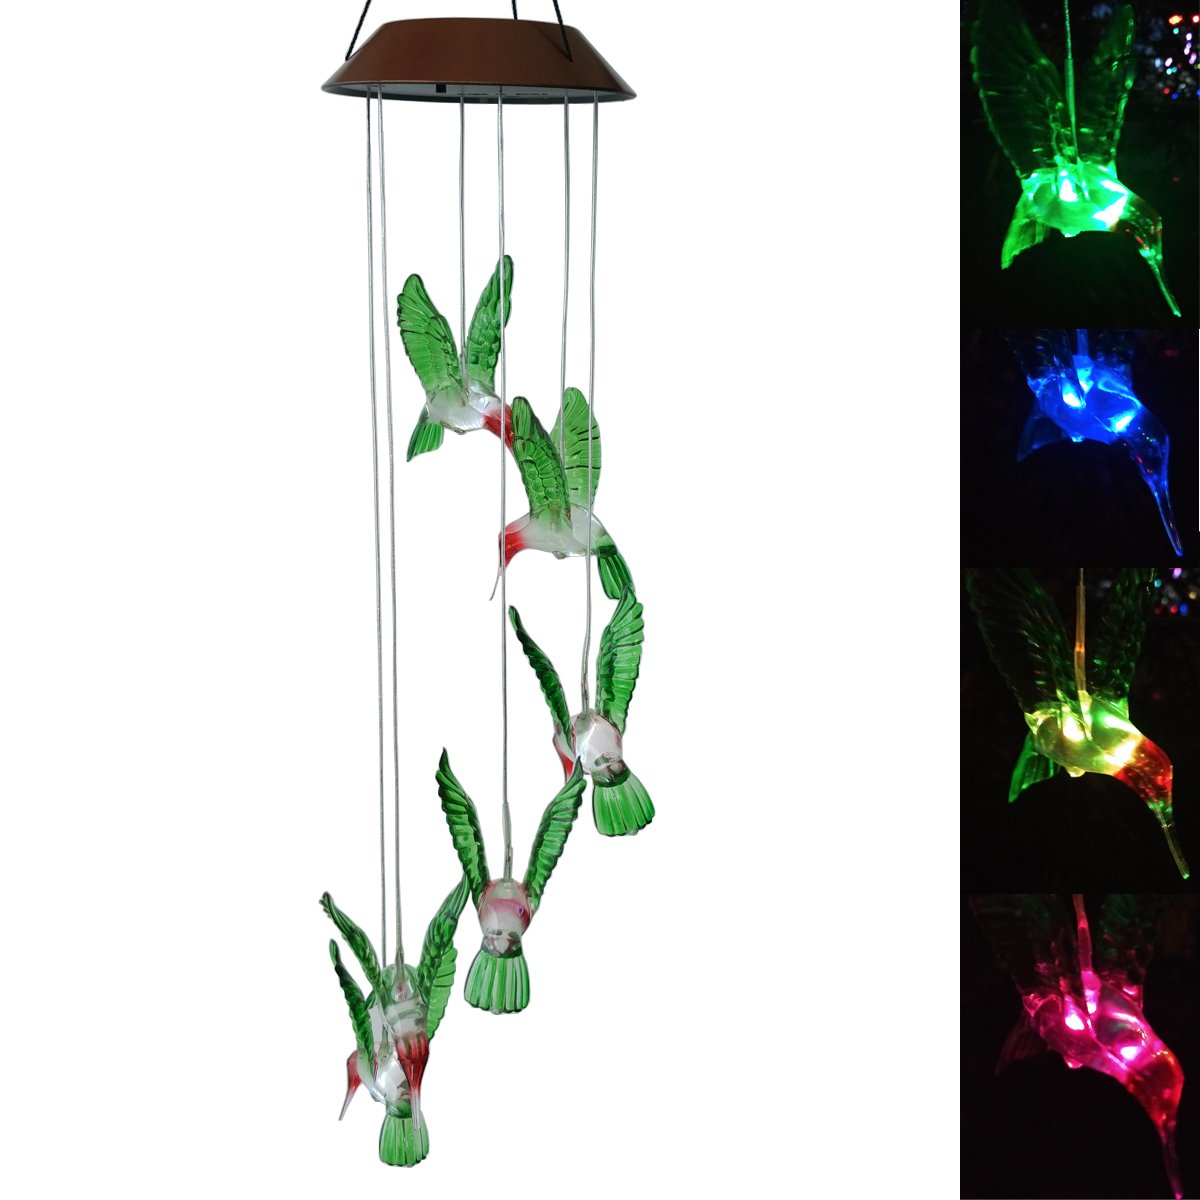 (Hummingbird) - Colour-Changing LED Solar Mobile Wind Chime LED Changing Light Colour Waterproof Six Hummingbird Wind Chimes For Home Party Night Garden Decoration B075C96FW7 ブラウン